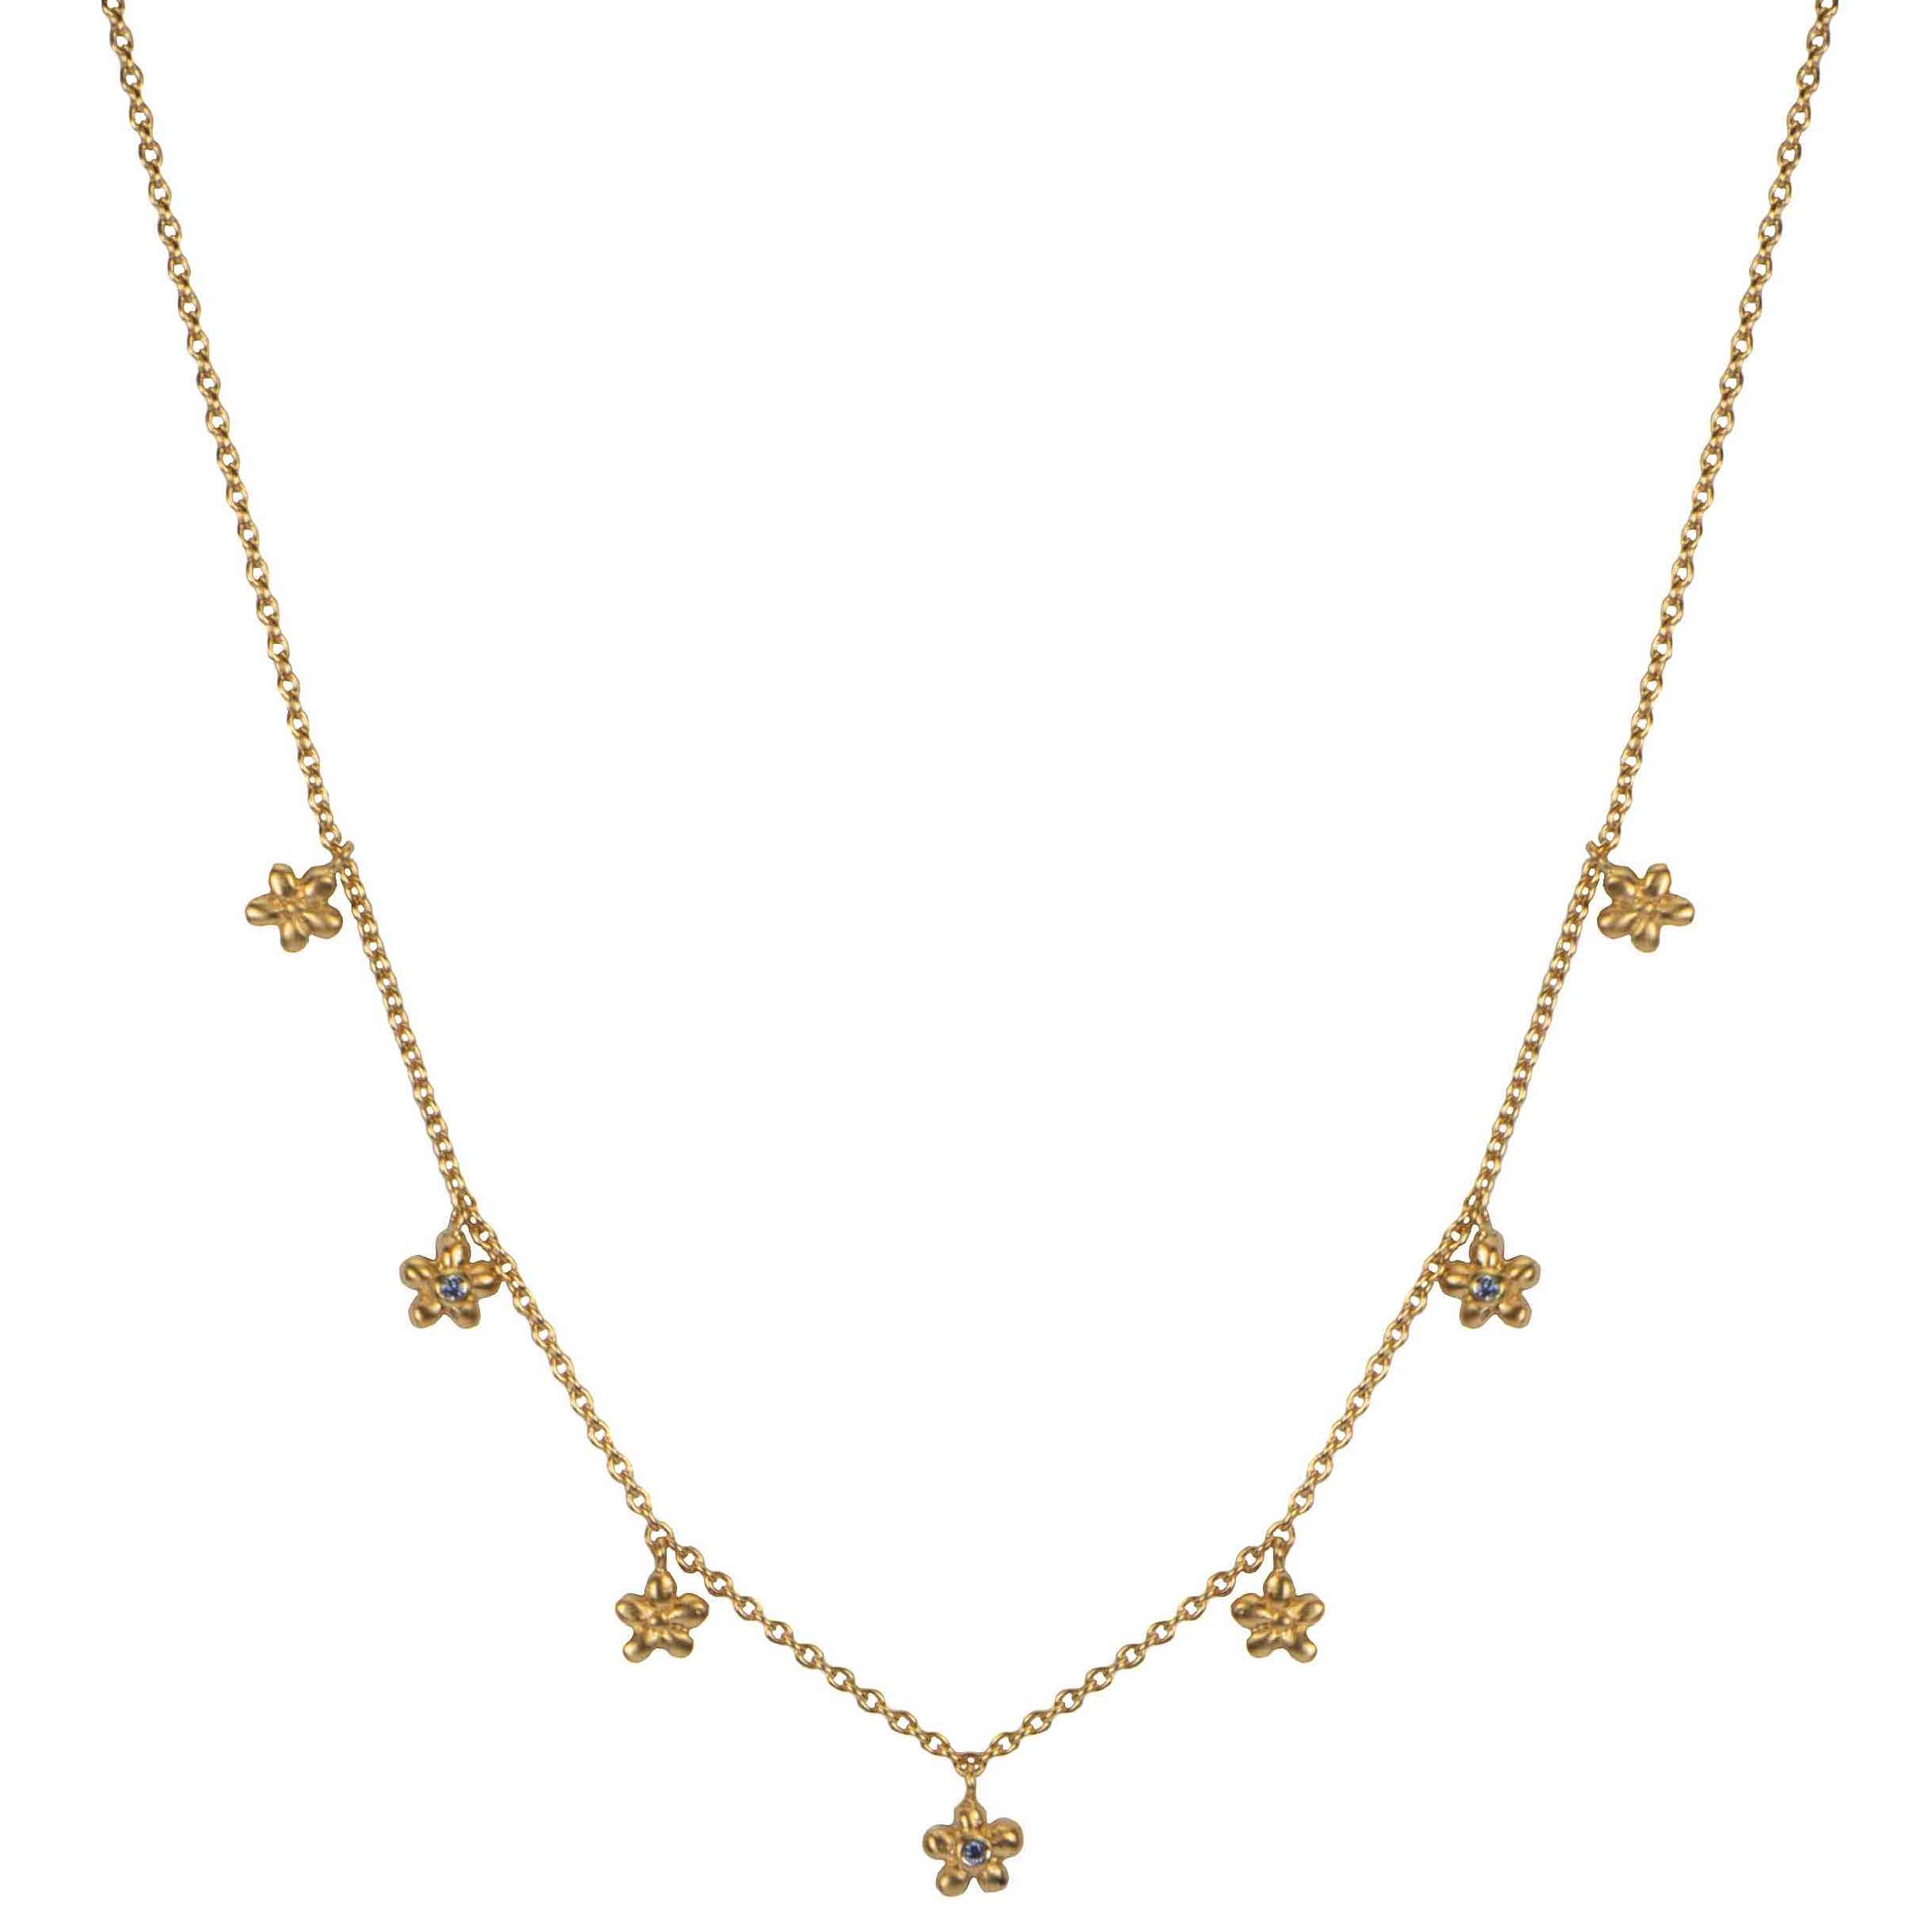 Hultquist Anthia Necklace Gold S02059G